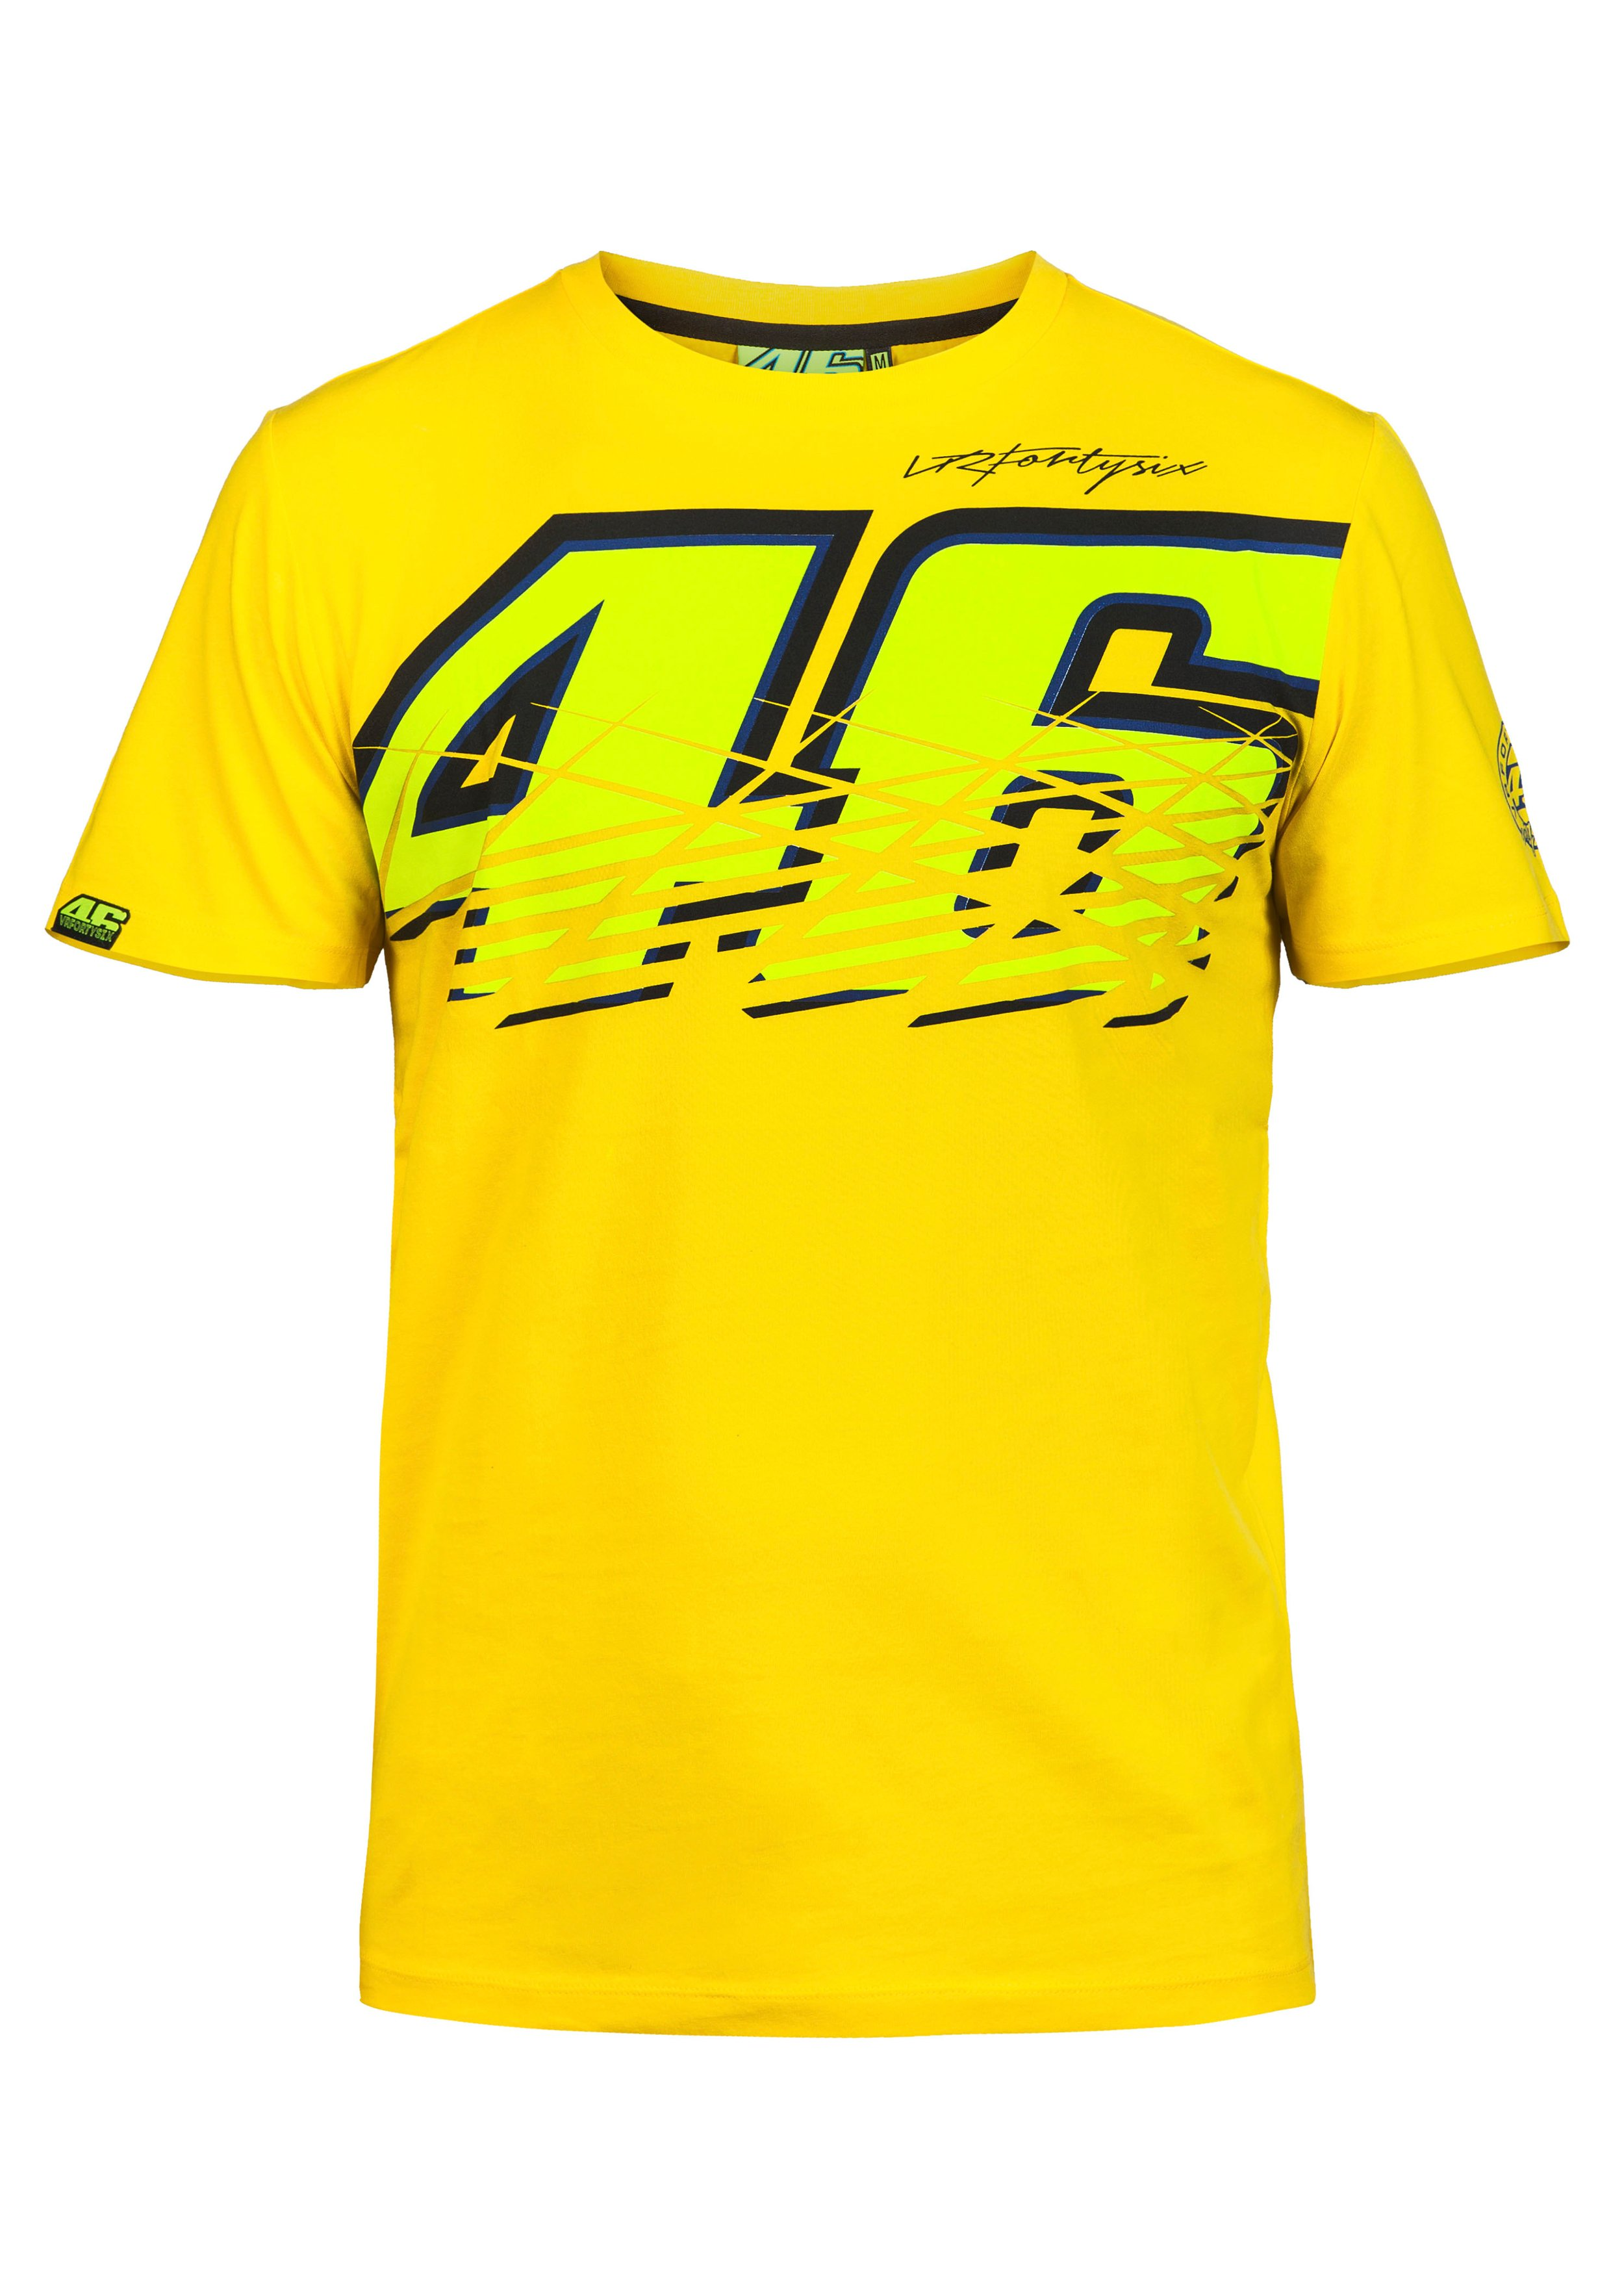 valentino rossi tee 46 yellow fanartikel merchandise. Black Bedroom Furniture Sets. Home Design Ideas